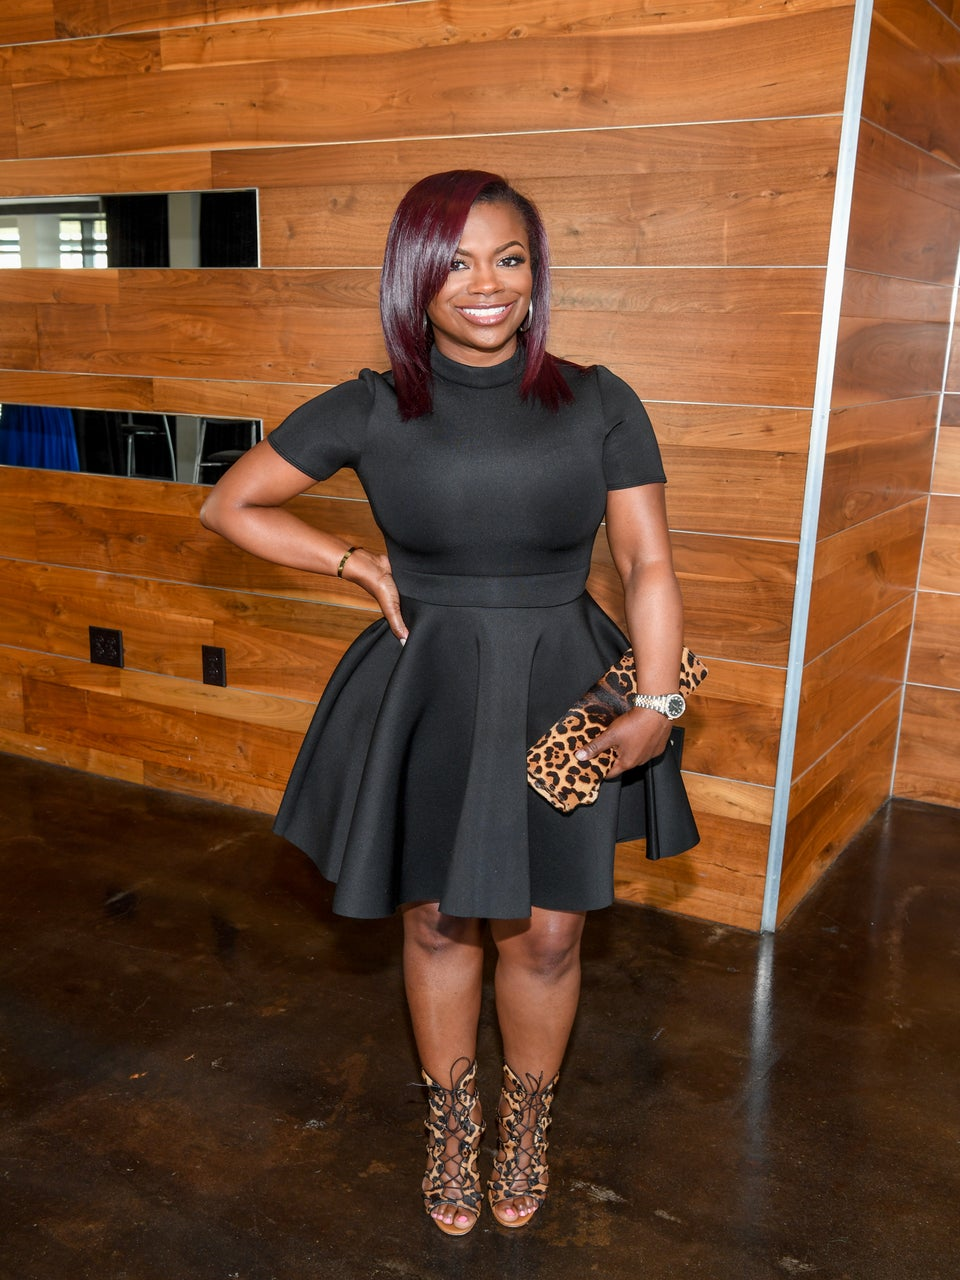 Kandi Burruss Shares Feelings On Baby Daddy Drama And Apologizes For Green Card Comment